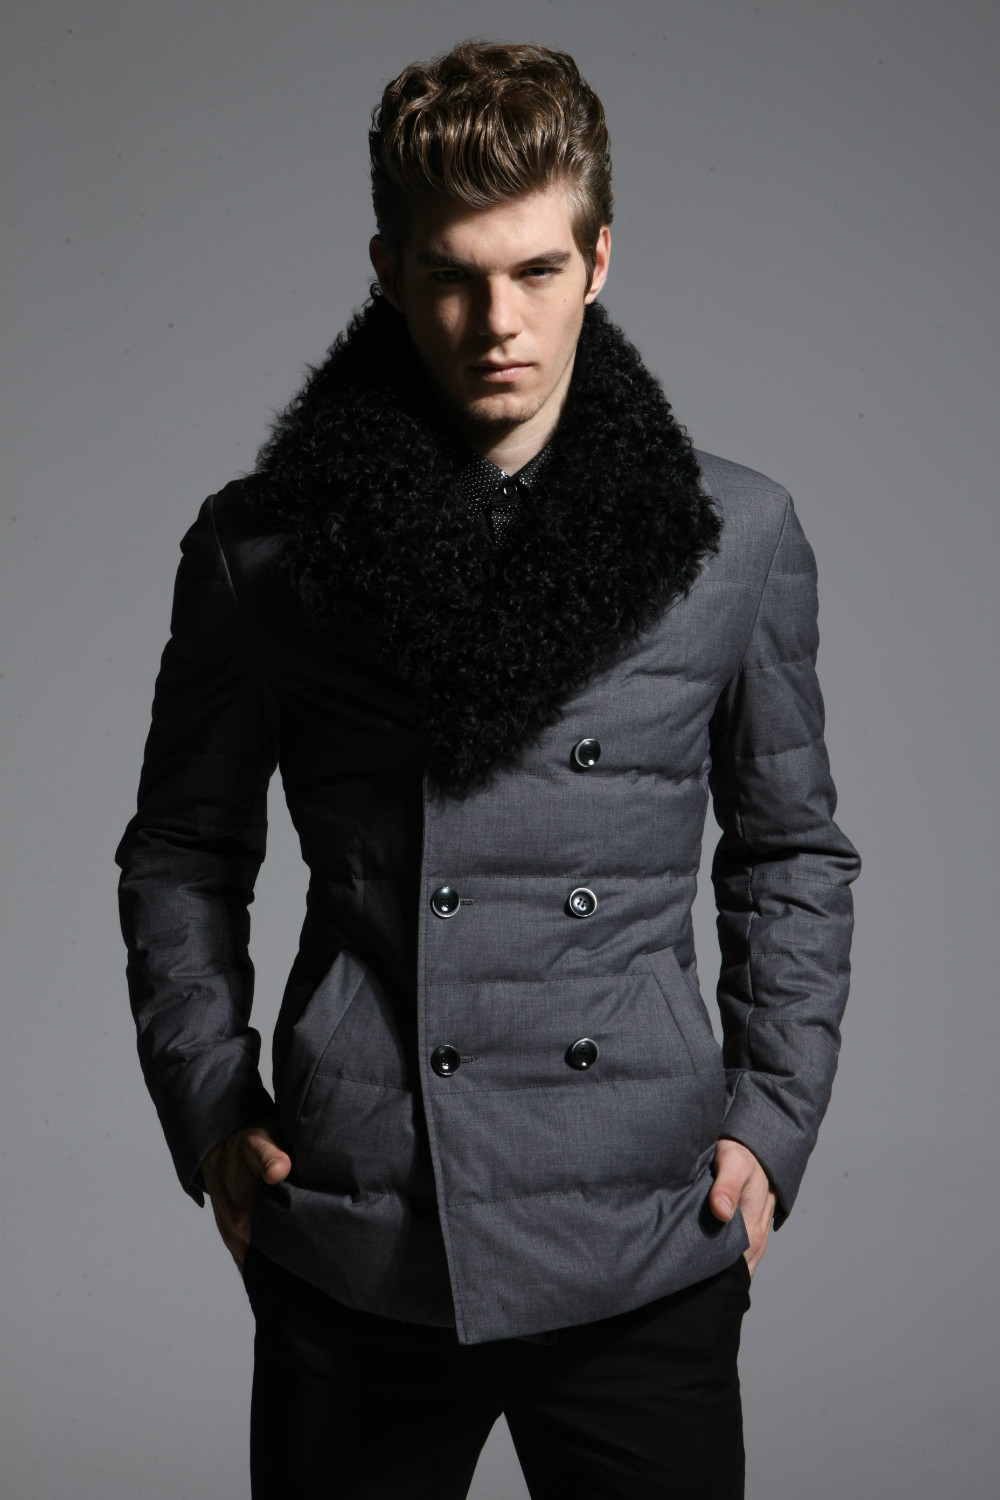 BASIC-EDITIONS Winter High-end brands Mens Fashion Winter Down Jacket With Lamb Fur Collar Coat - BC1-060Y Free shipping